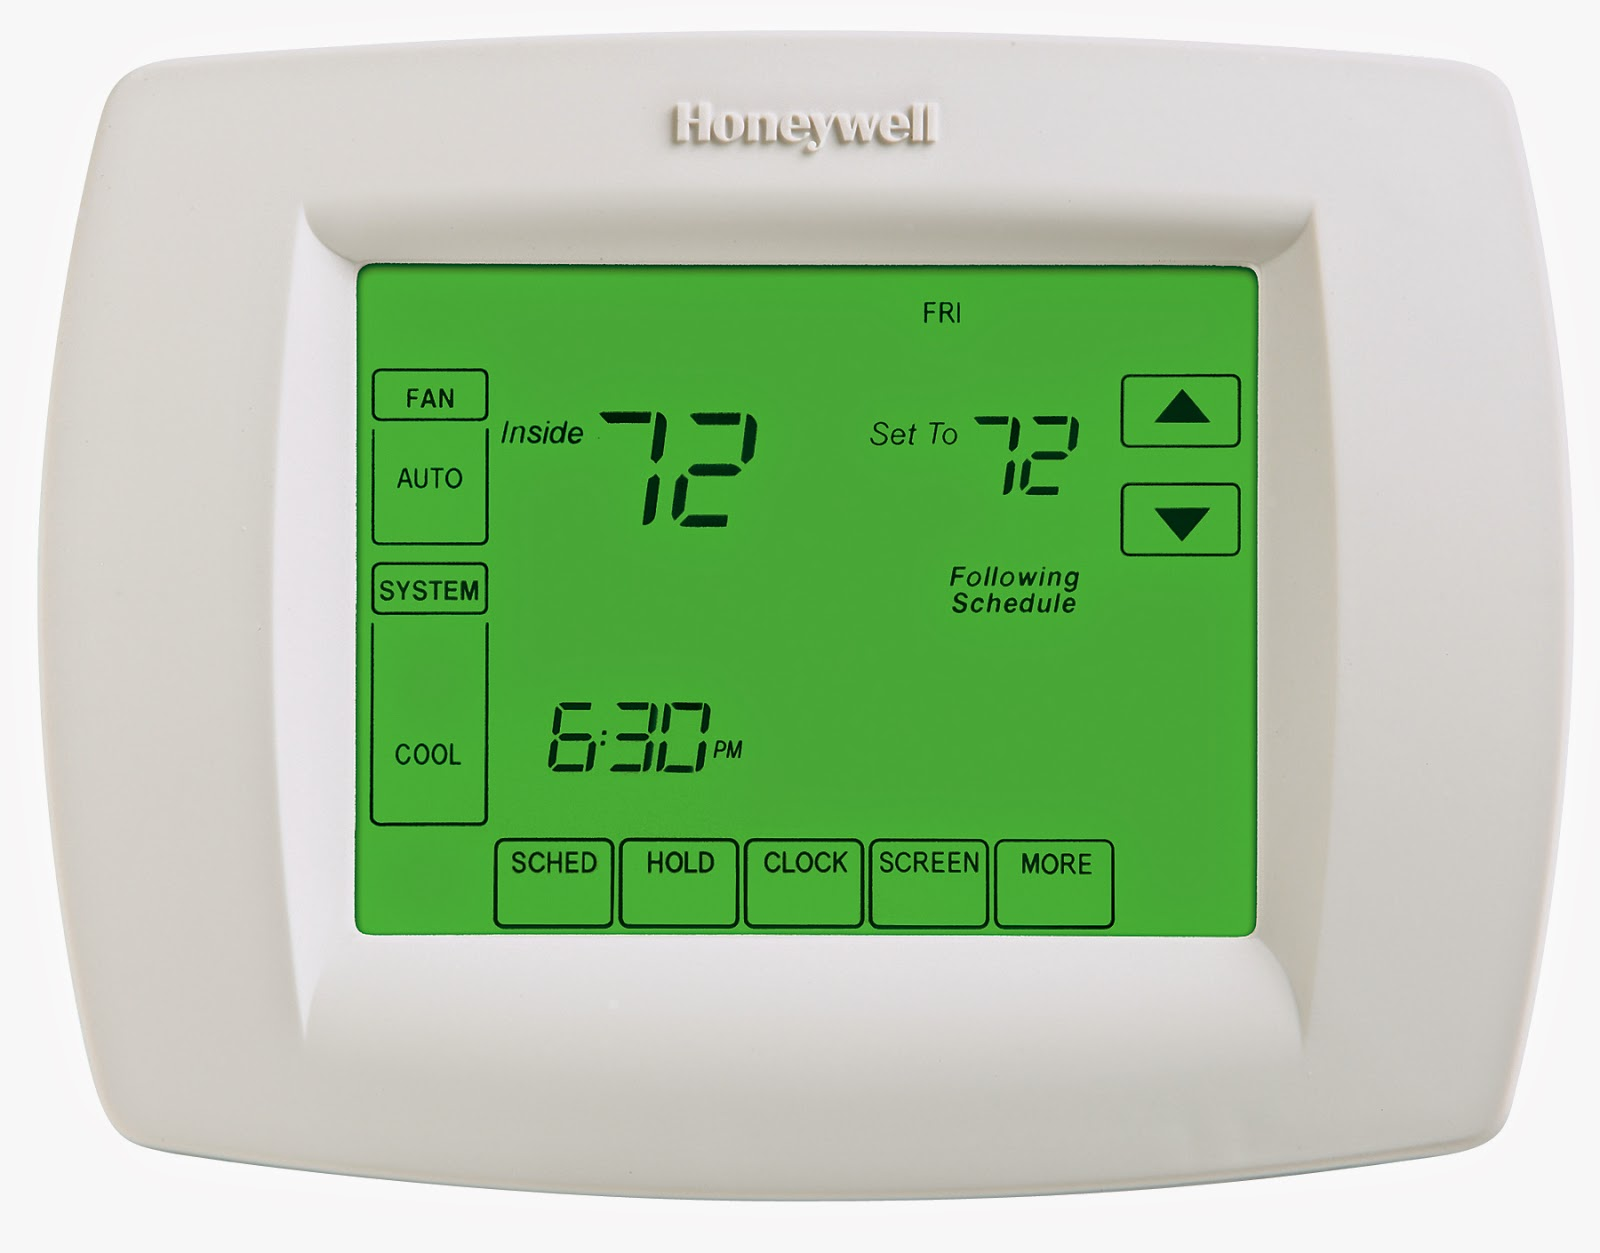 Honeywell Vision Pro 8000 Manual Download Manual PDF Online #0C3310